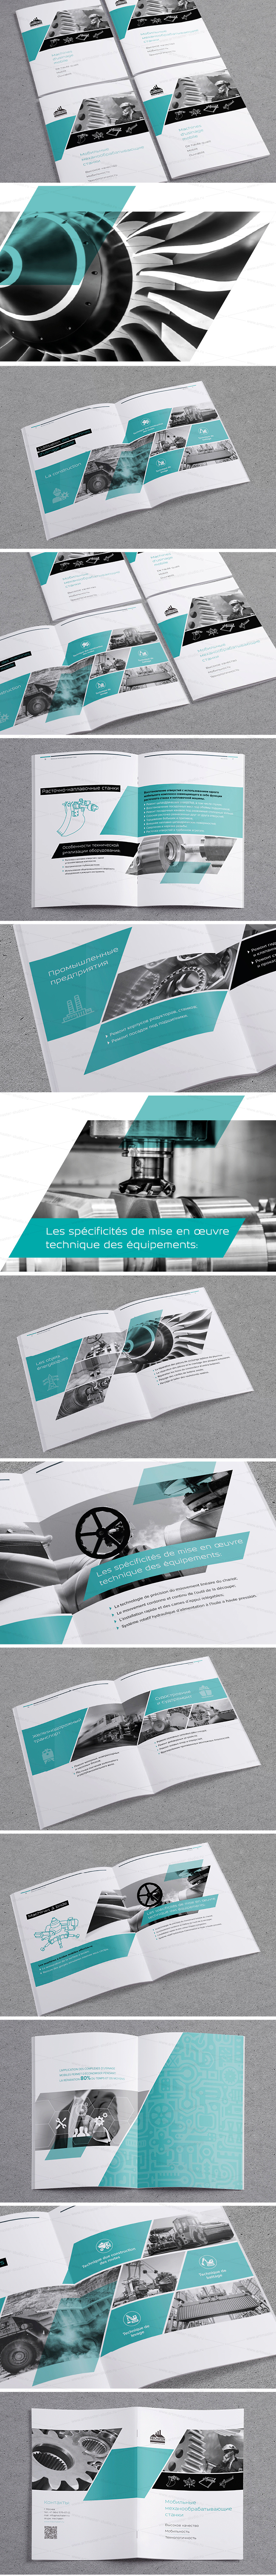 Brochure_Mechaten_am